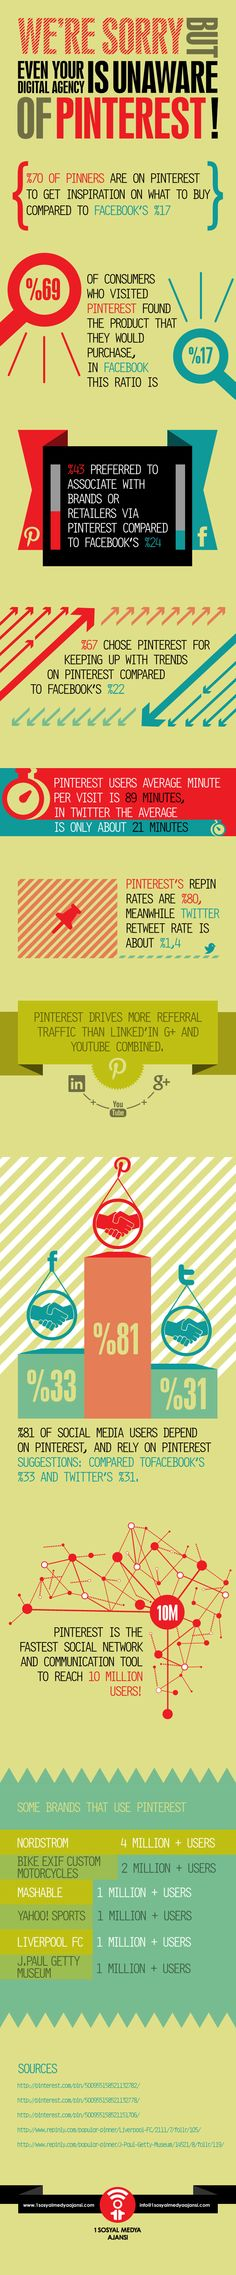 Pinterest Secrets Infographic! Why #Pinterest is the right place for those who want to advertise their product